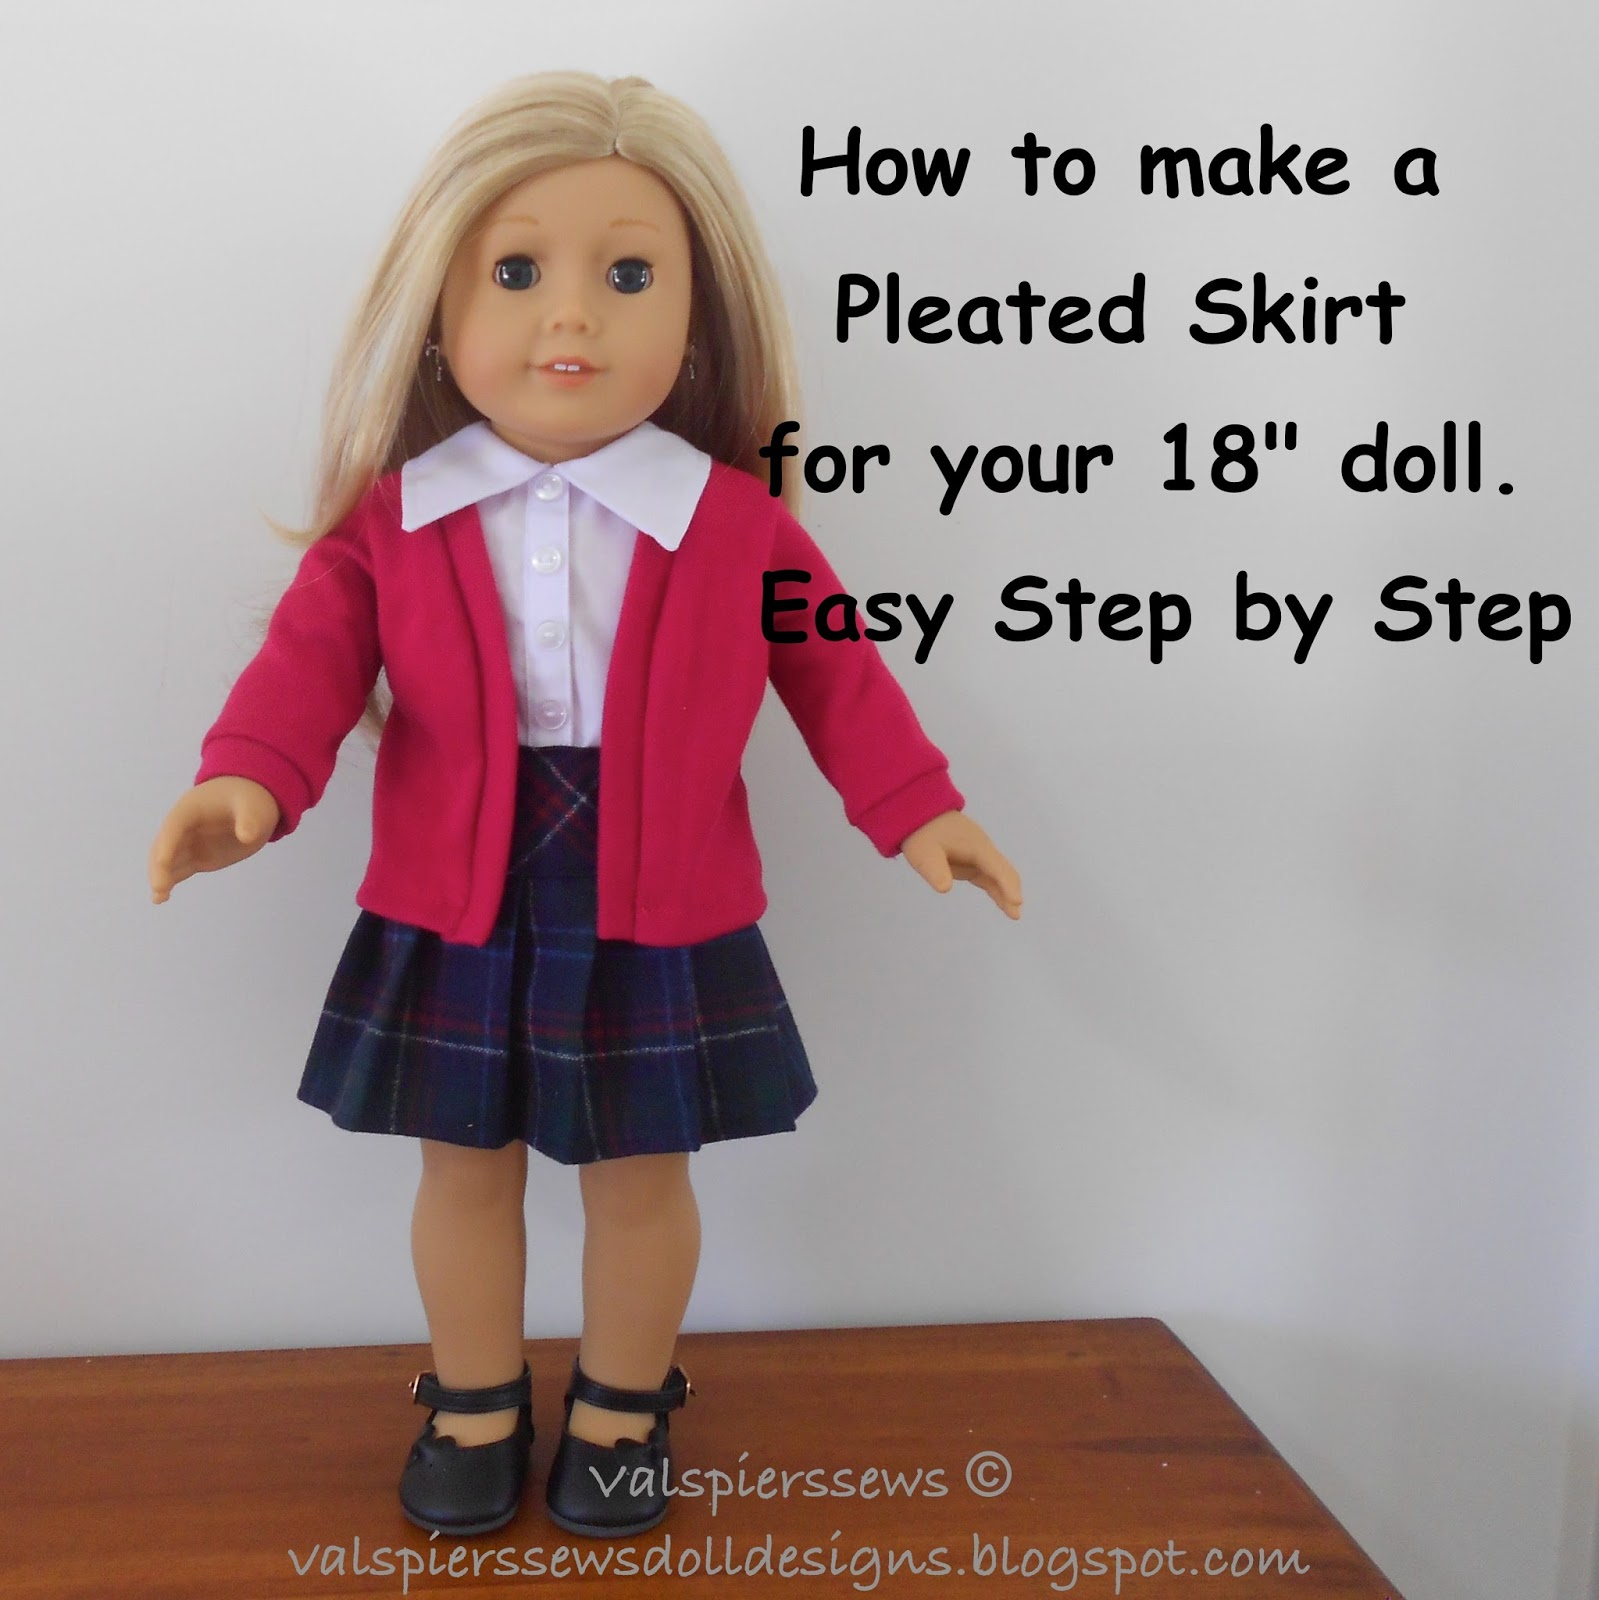 Doll clothes patterns by valspierssews how to make a pleated pleated skirts look so beautiful but i hate trying to make the pleats using the pattern sheet that has all those arrows and it is just so long jeuxipadfo Images